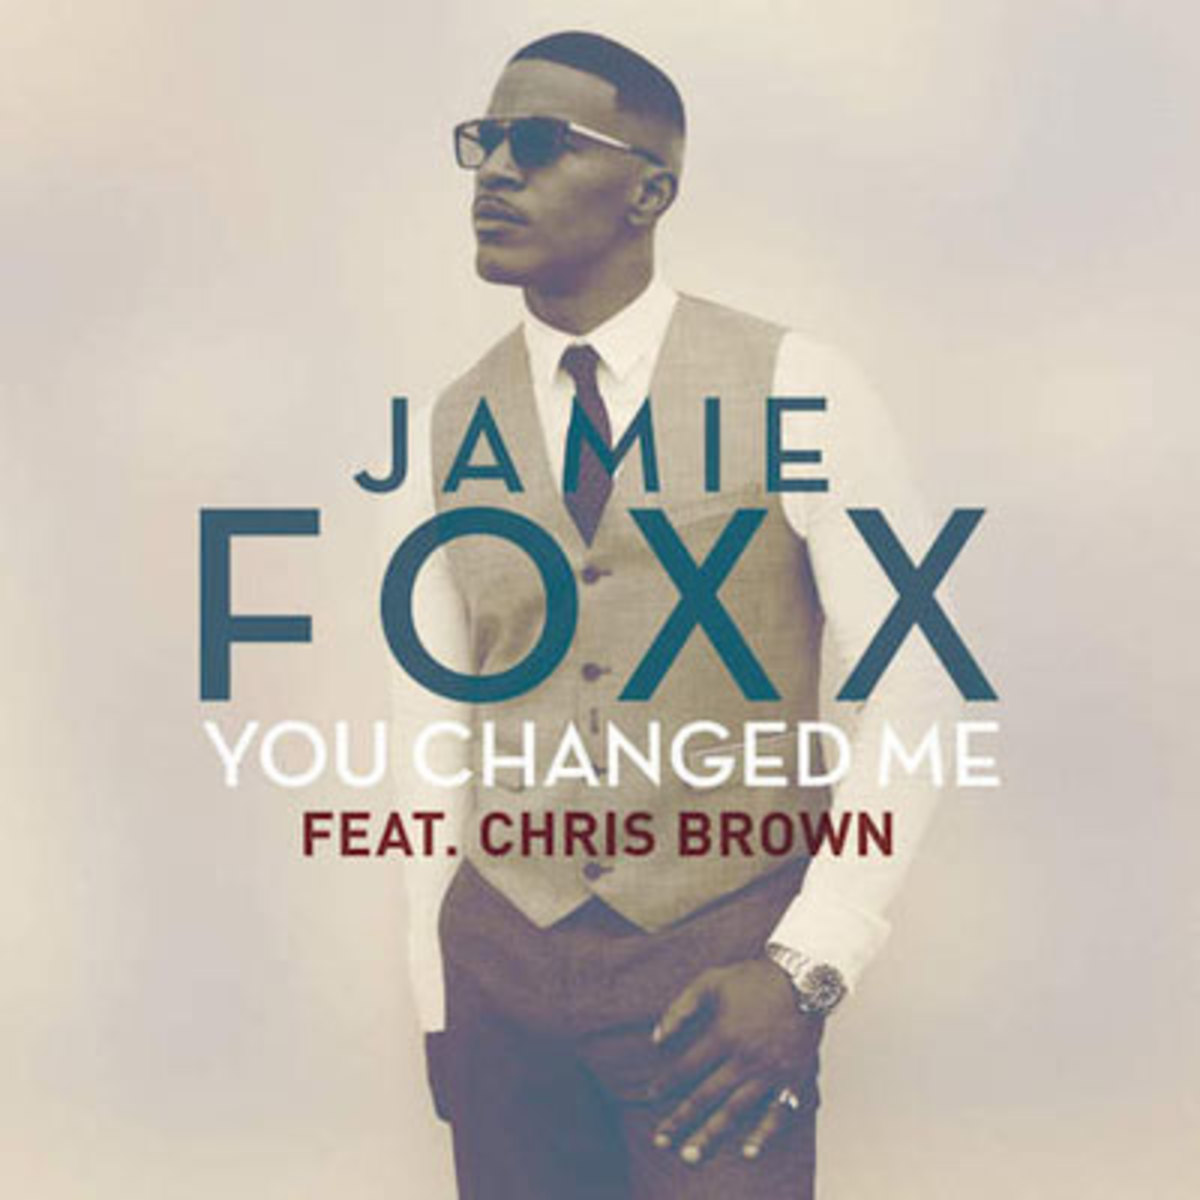 jamie-foxx-you-changed-me.jpg